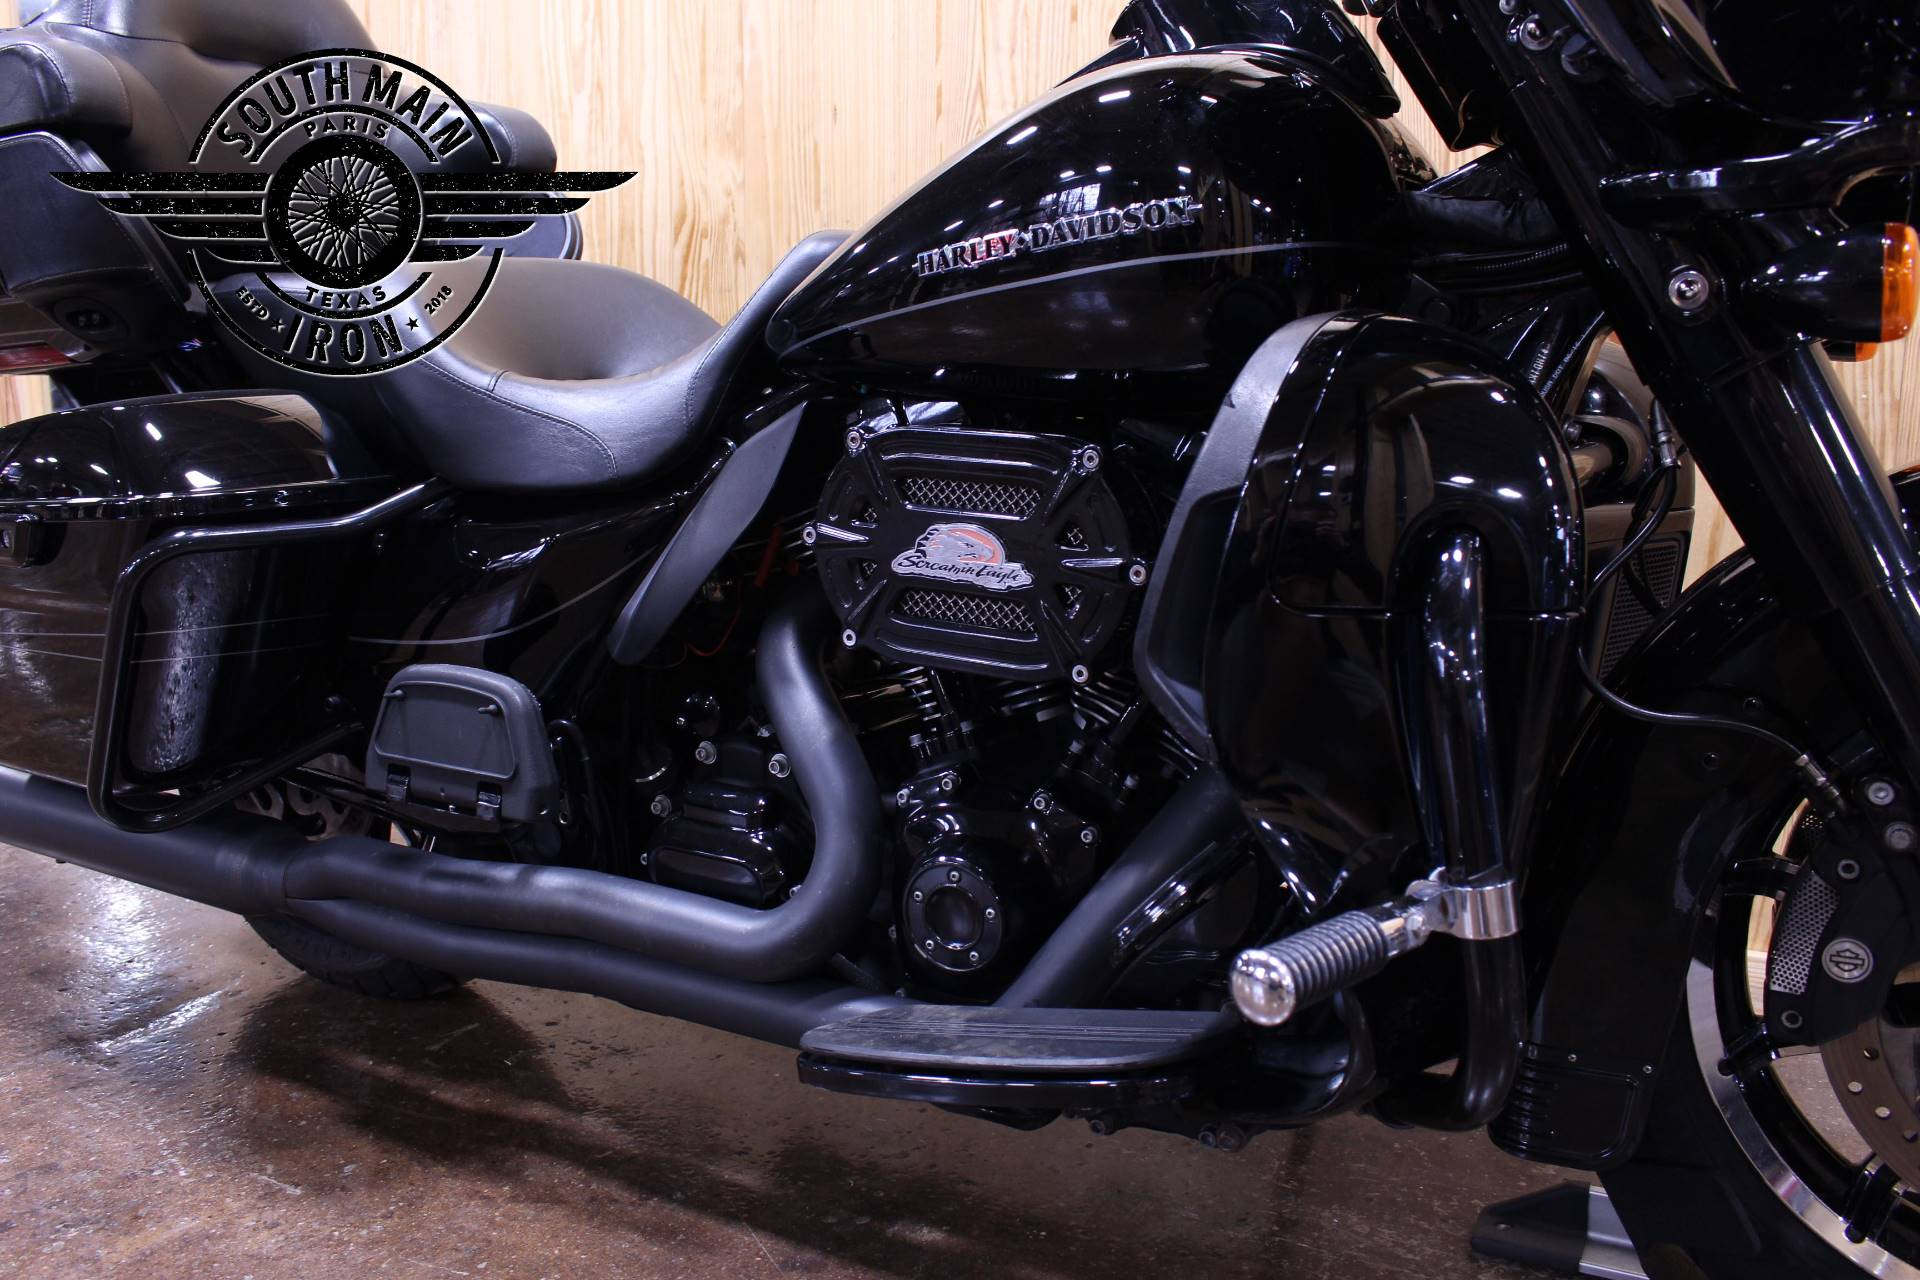 2015 Harley-Davidson Ultra Limited in Paris, Texas - Photo 3